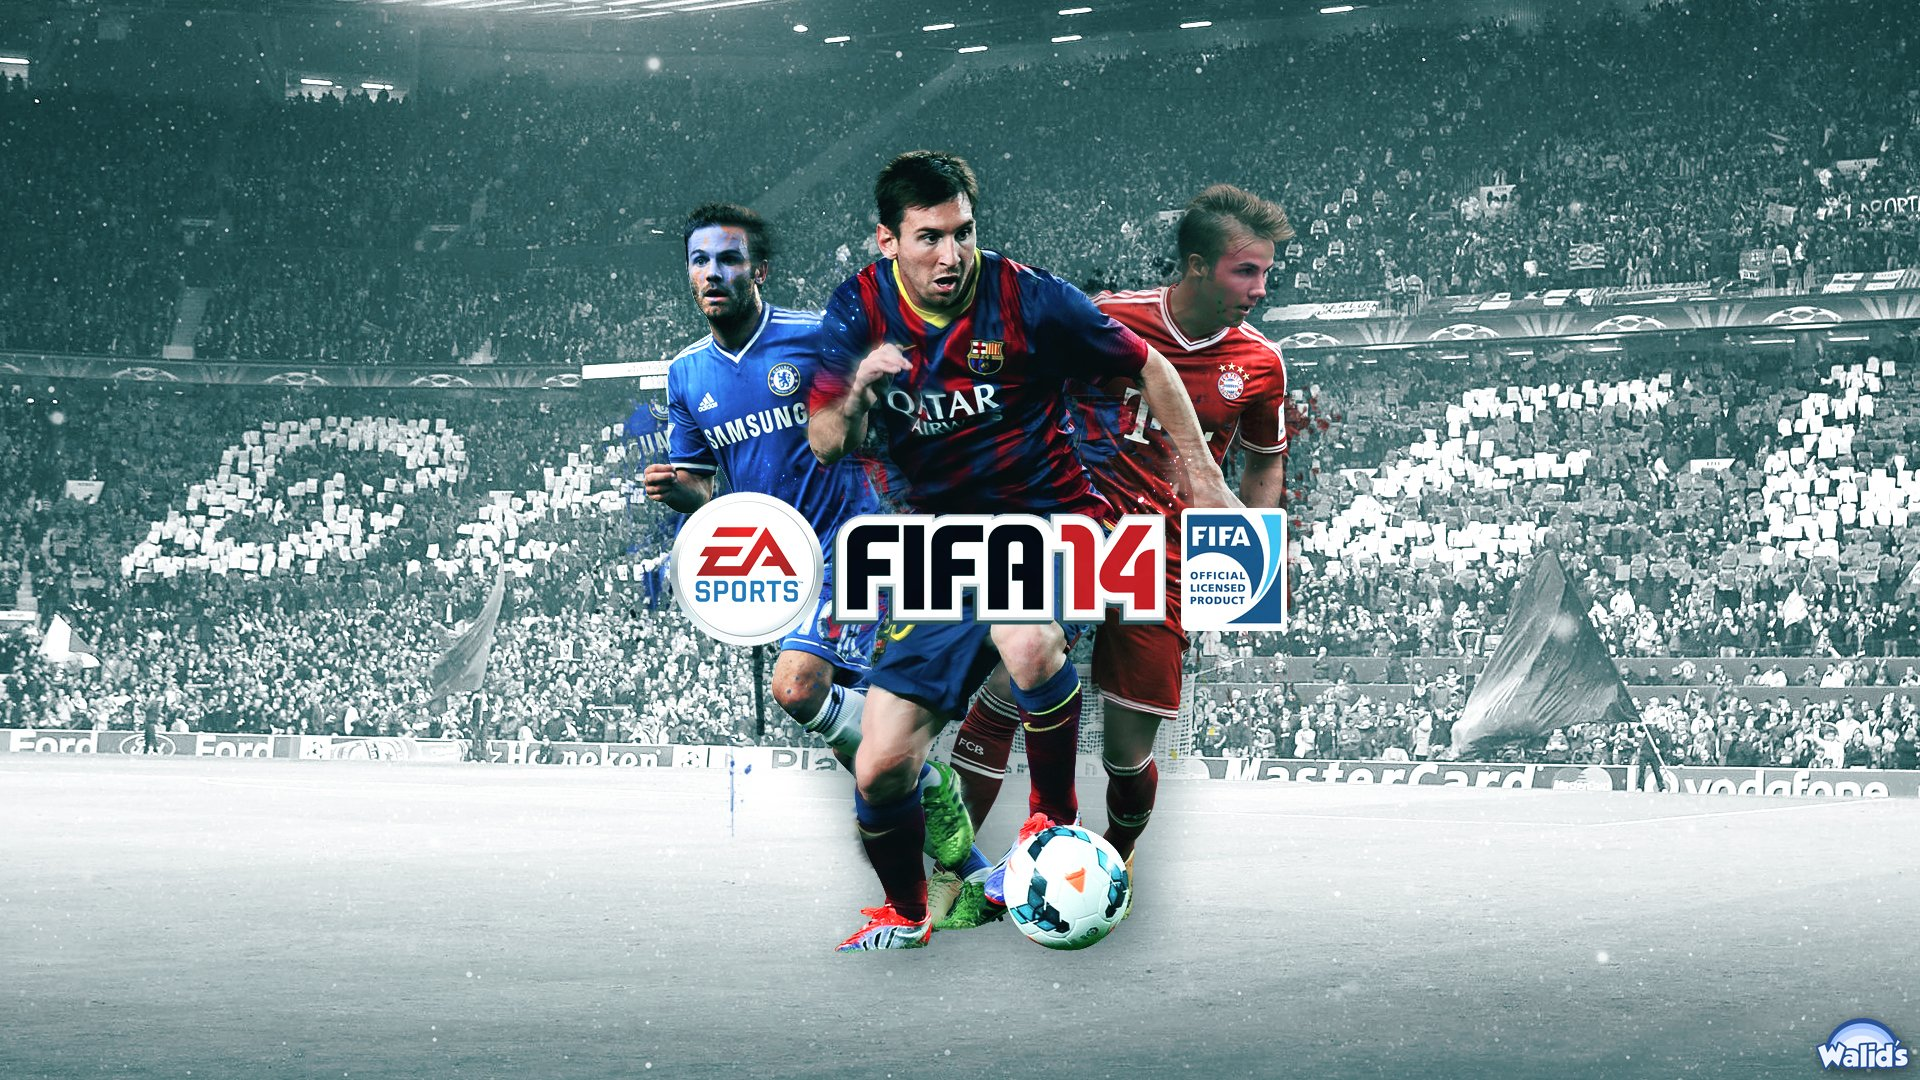 Fifa 14 world cup soccer game fifa14 60 wallpaper 1920x1080 fifa 14 world cup soccer game fifa14 60 wallpaper 1920x1080 362118 wallpaperup voltagebd Image collections